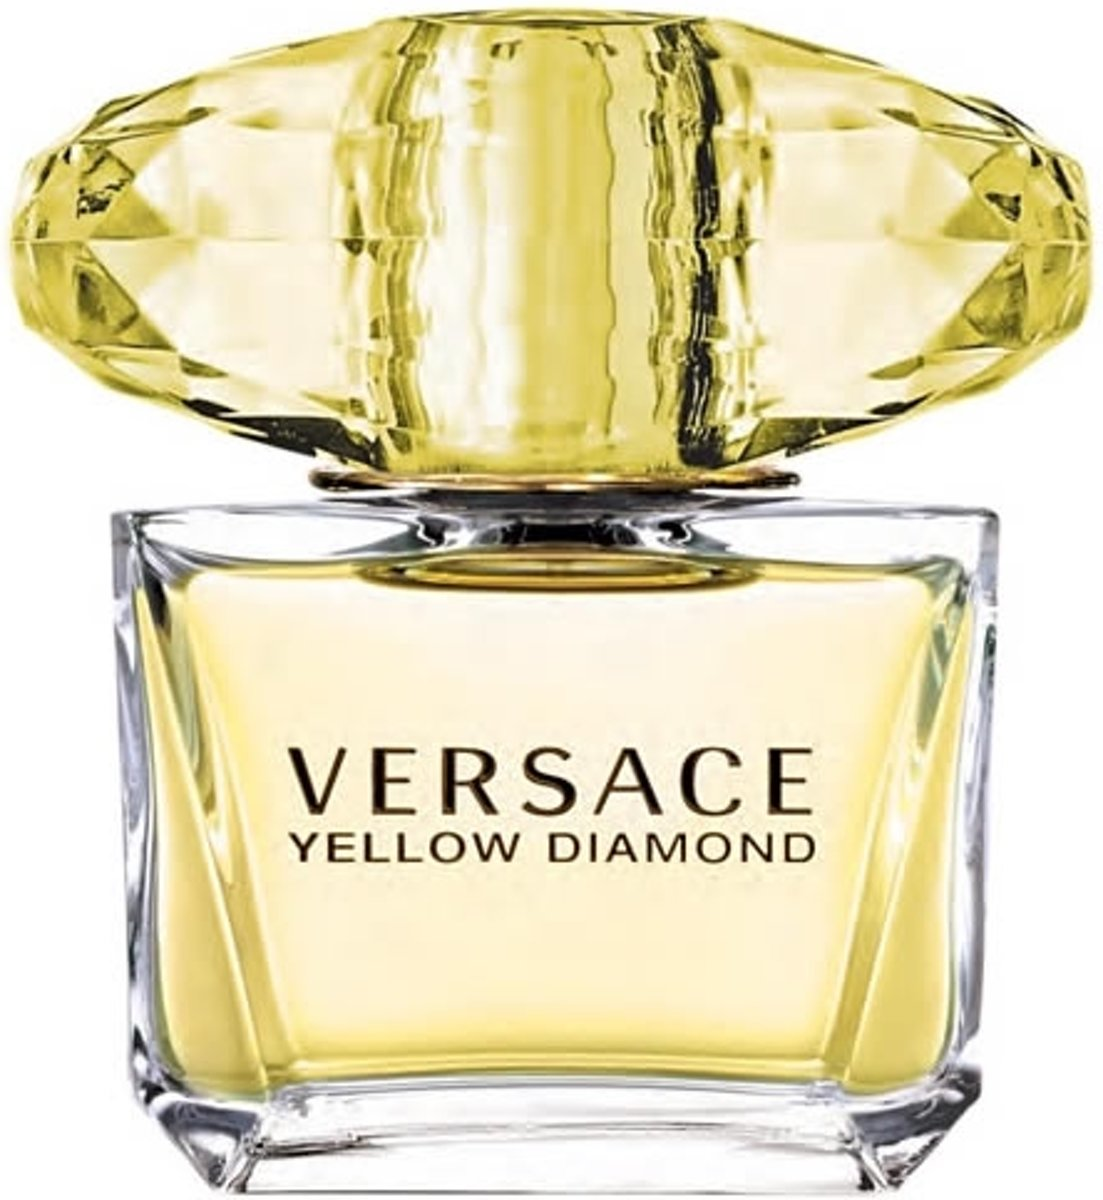 Versace Yellow Diamond Eau De Toilette 200Ml